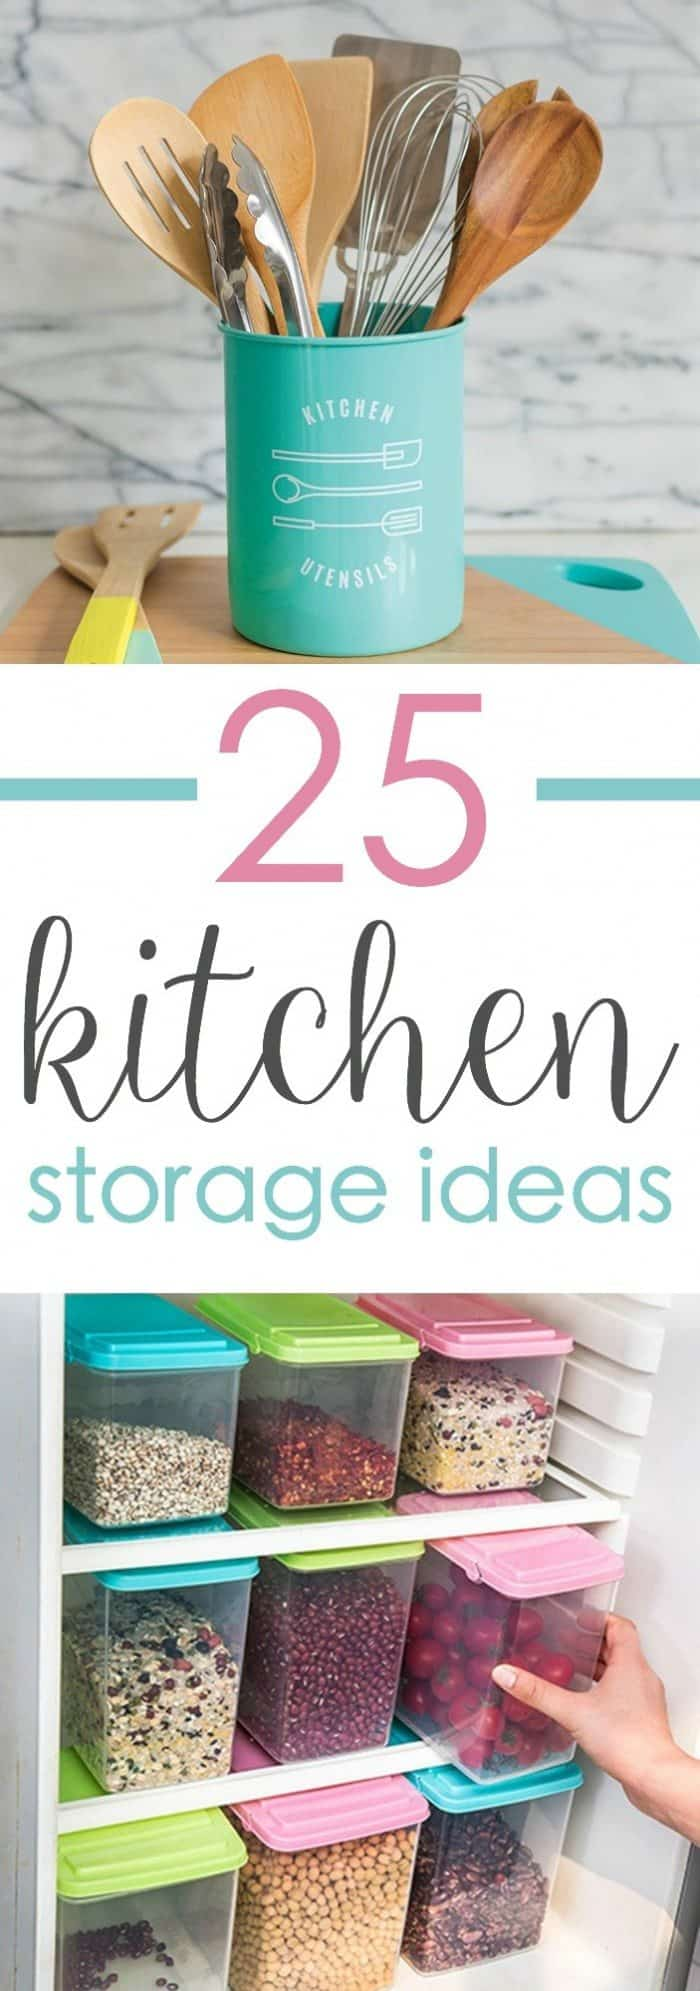 kitchen-storage-ideas-1